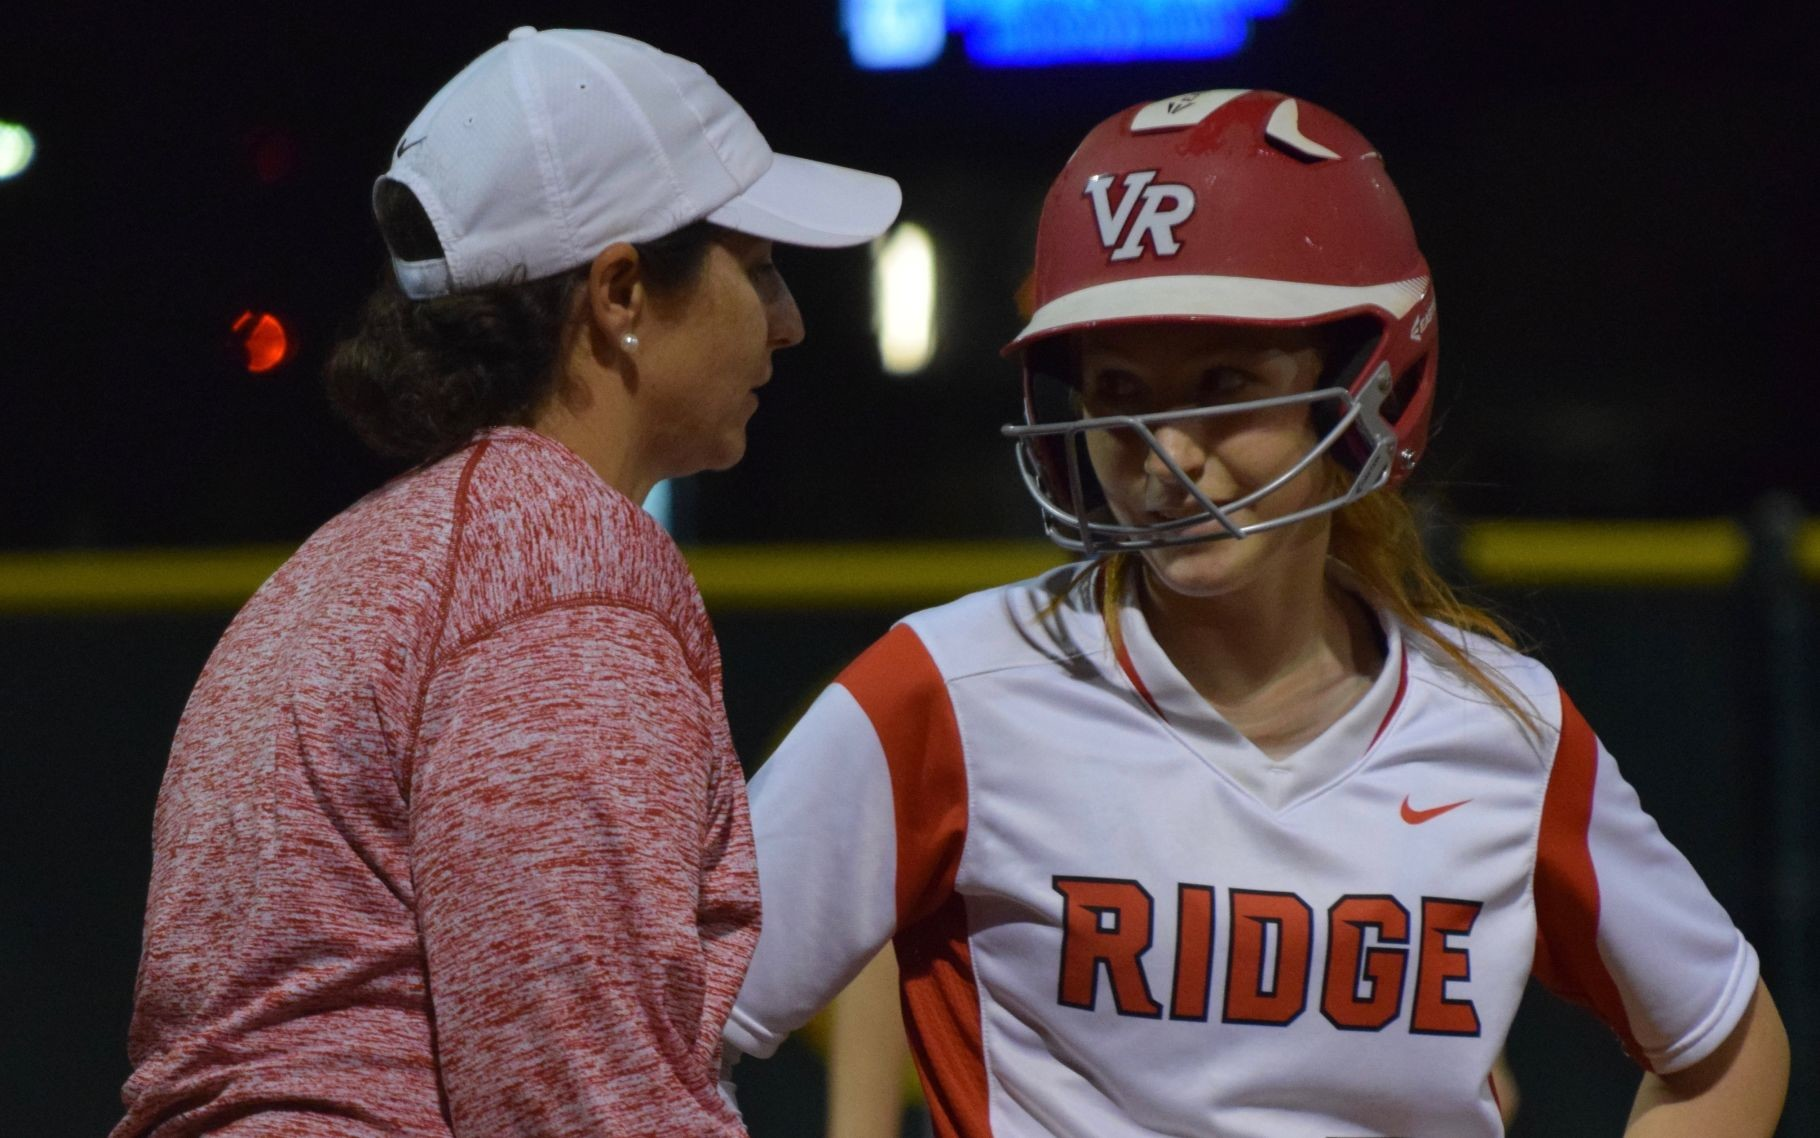 Vista Ridge coach Lauren Myrick, left, said Nicole Nickdow is the strongest player she has ever coached.